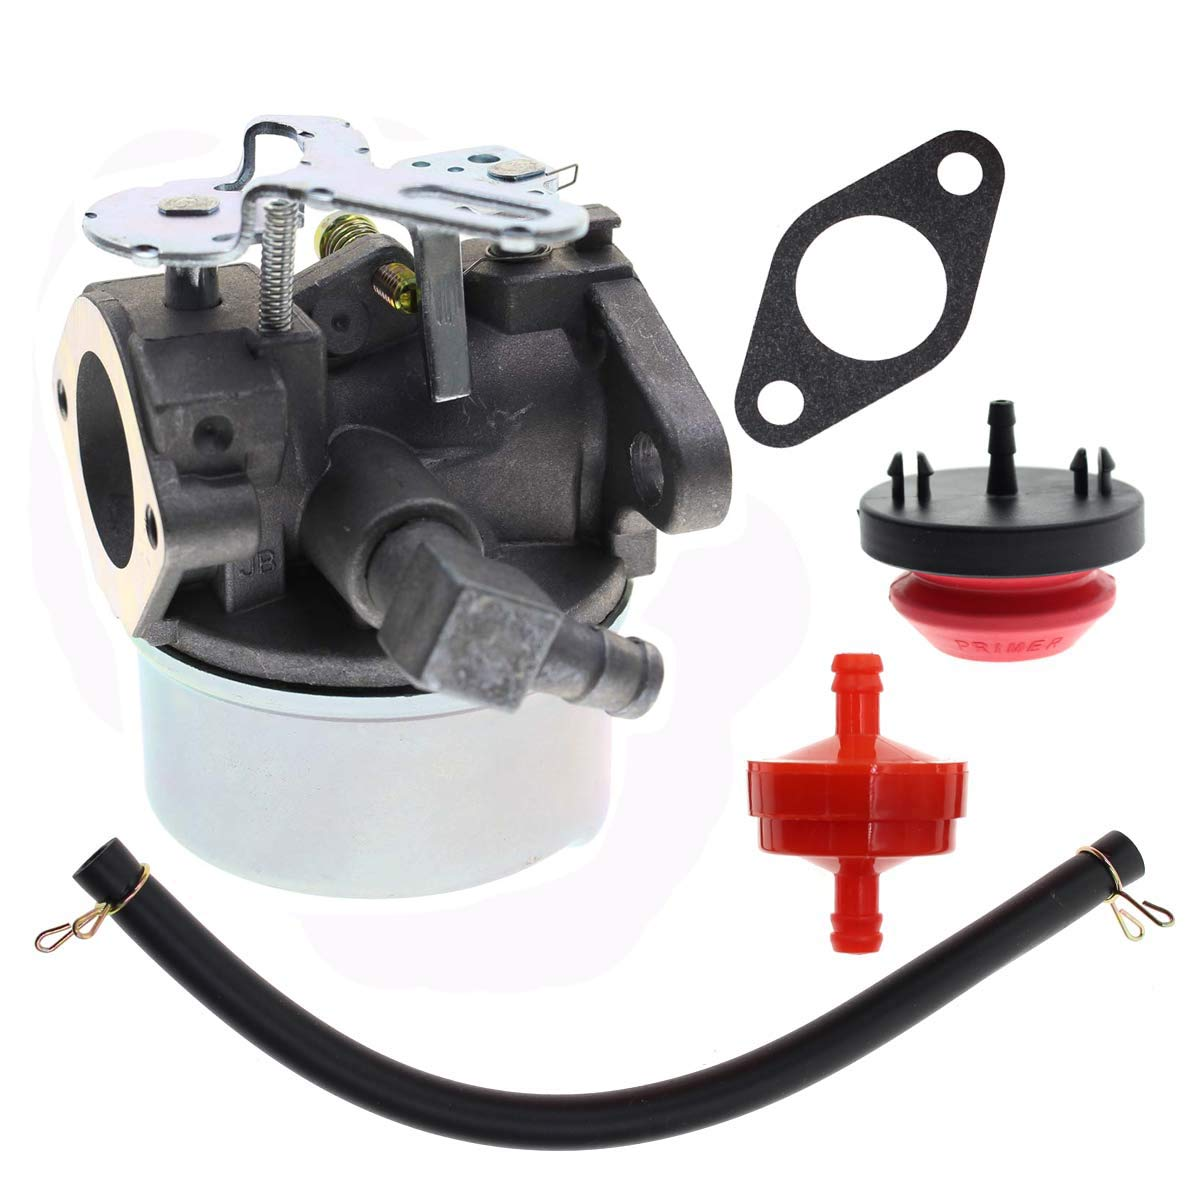 MOTOALL Carburetor for Tecumseh 632107 640084 632107A 640084A 640084B 640299 Craftsman Yard Machine Sears MTD SNOWBLOWER SNOWKING 5HP Engine Toro 38035 38052 38054 38052C 38035C 38056 38056C 421 521